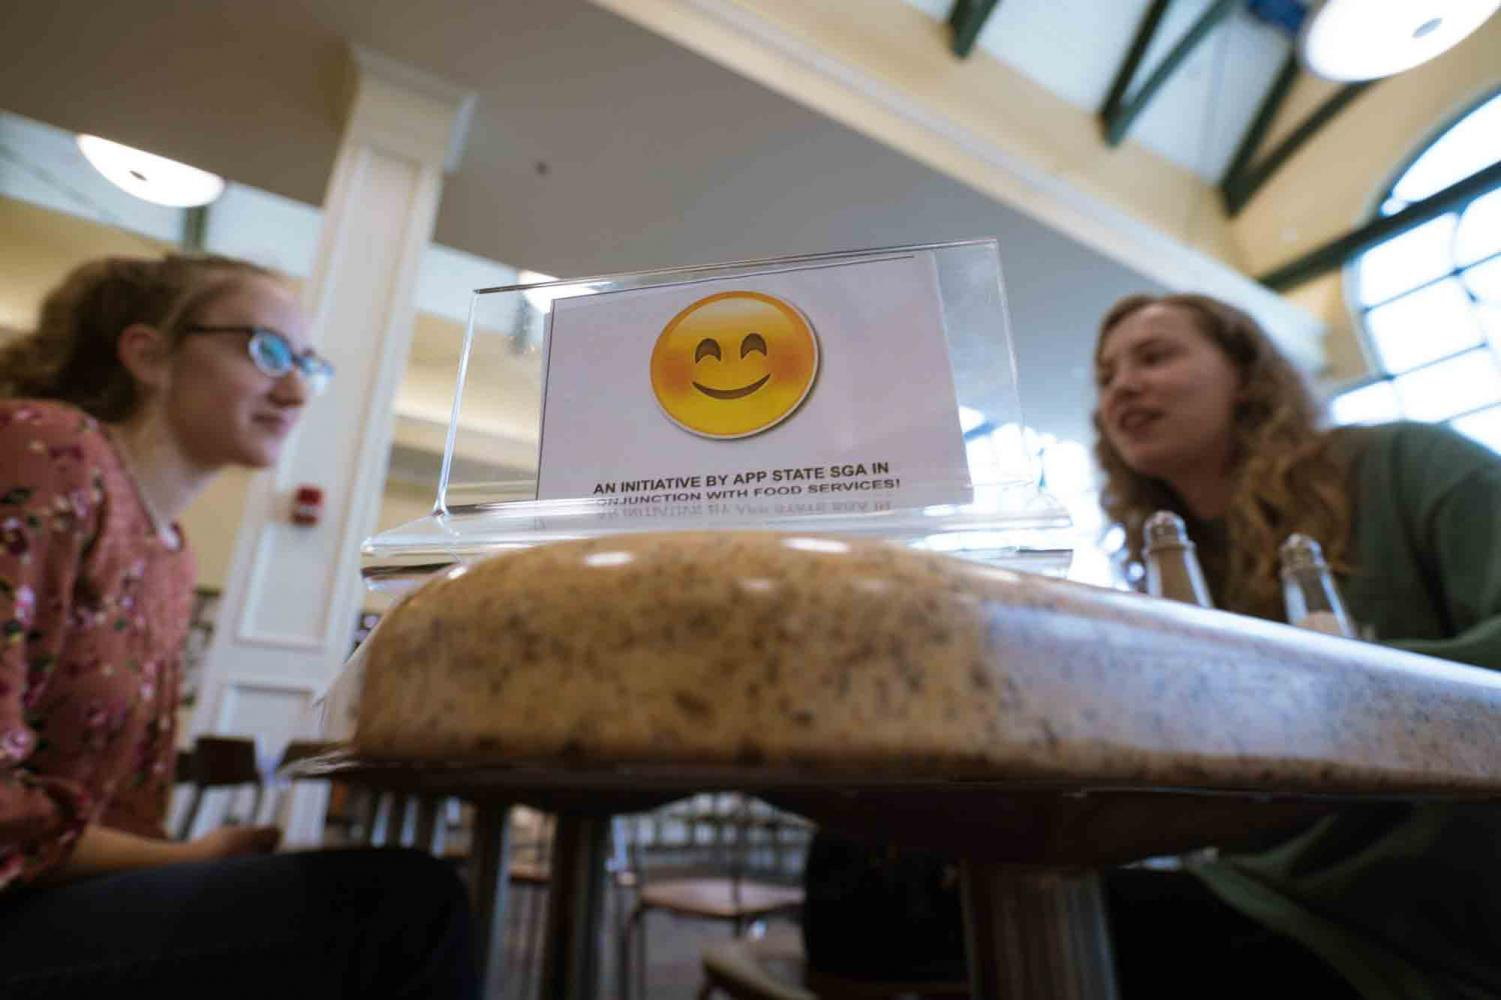 A smiley card brings two students together at lunch in Roess Dining Hall. Former SGA Senator Andrew Strahan created the Smiley Card so that students who don't want to sit alone during meals can place a small card with a smiling emoji on their tables to designate that they want someone to dine with them.